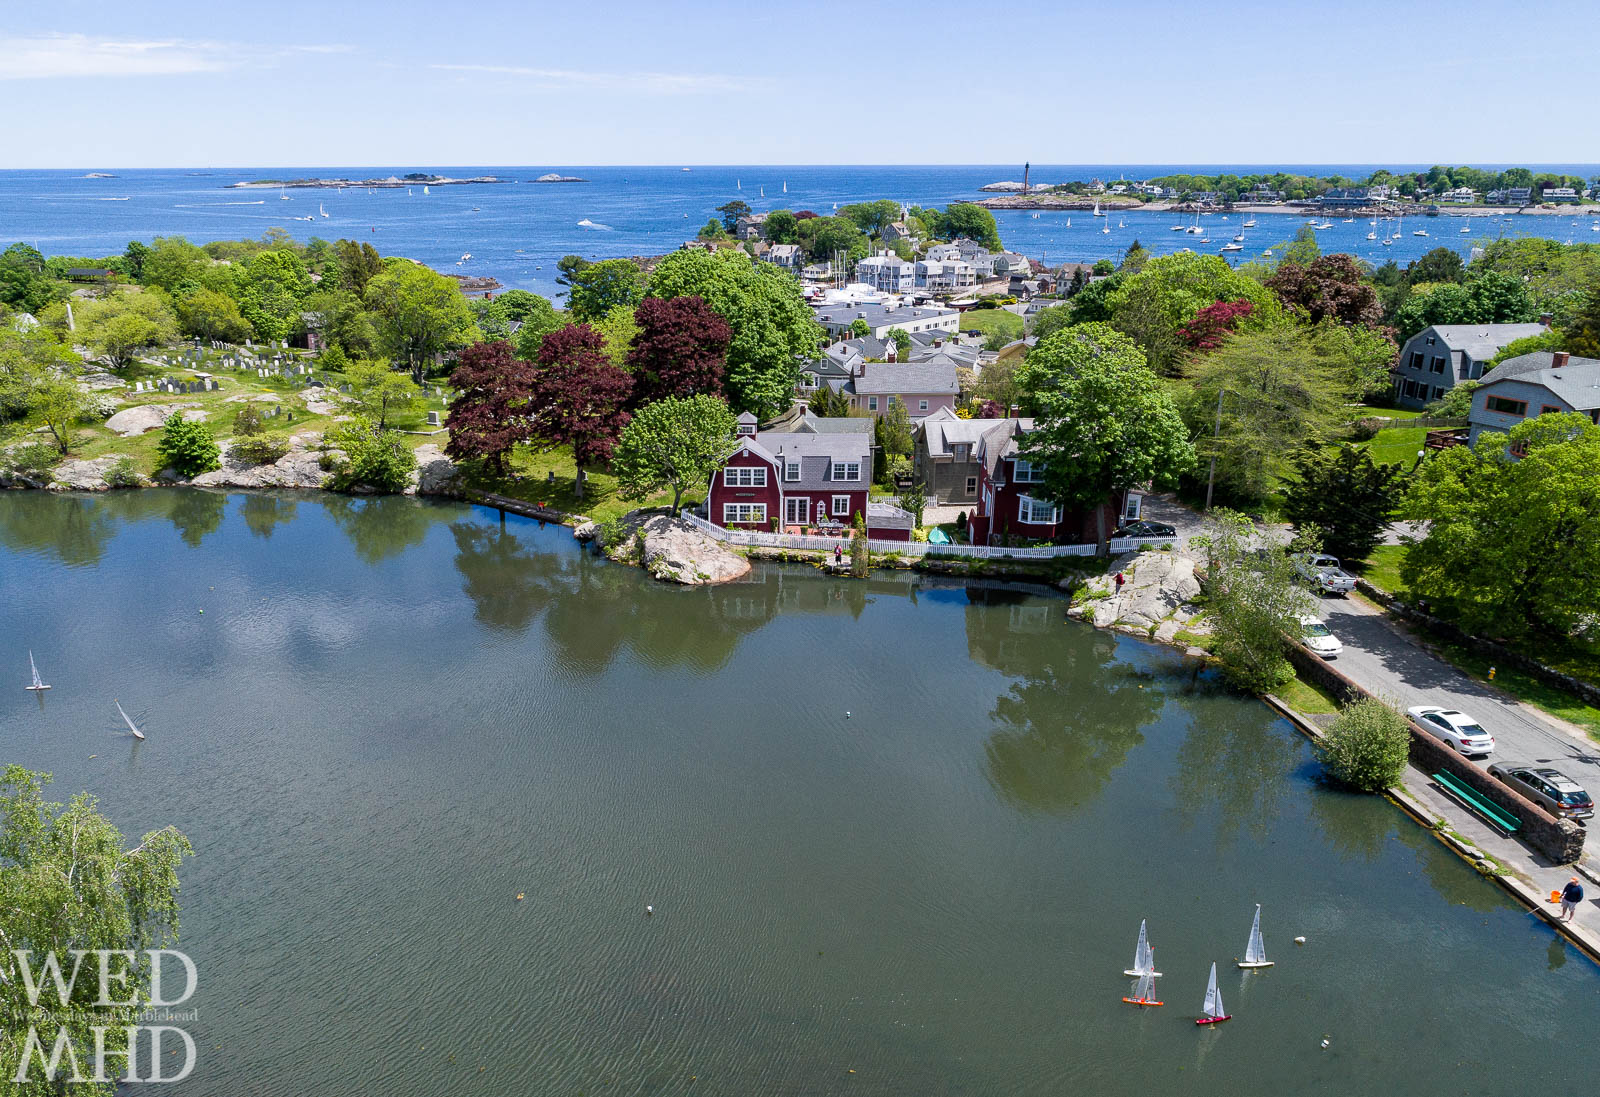 Sailing on Redd's Pond takes place on a beautiful Spring day with more boats seen sailing in the big harbor just beyond